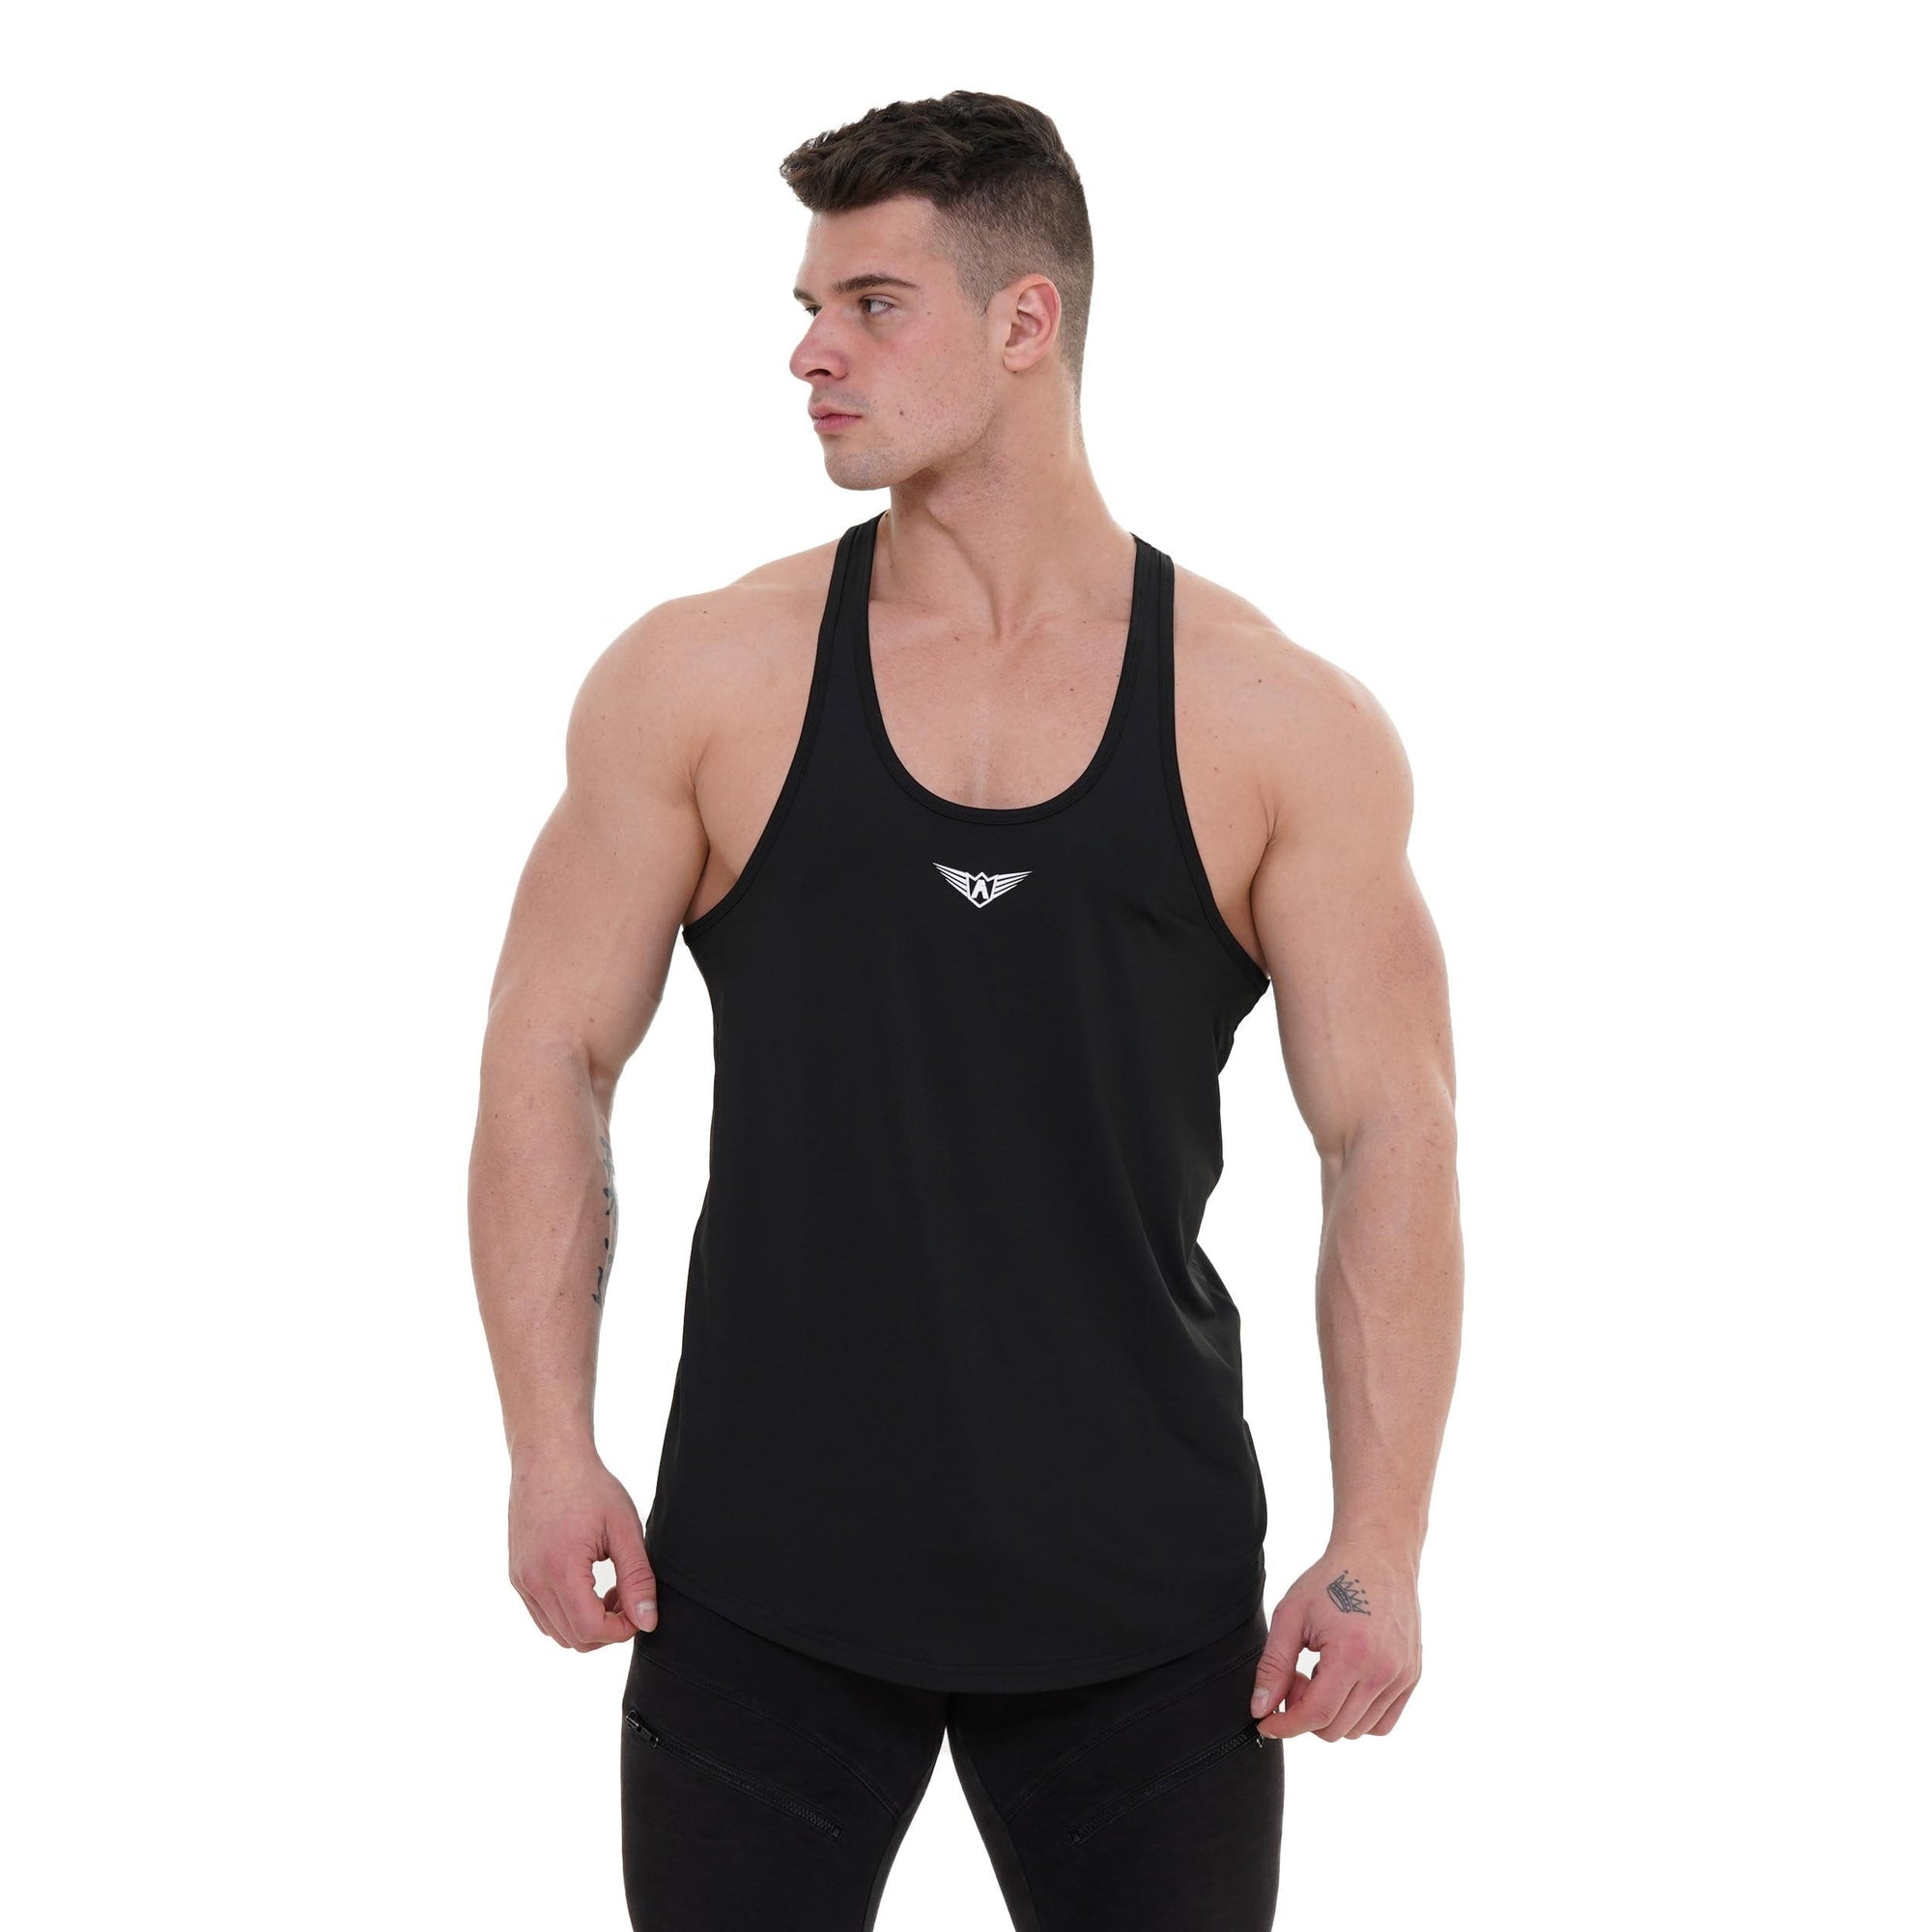 MEN BLACK STRINGER SINGLET TANK TOP